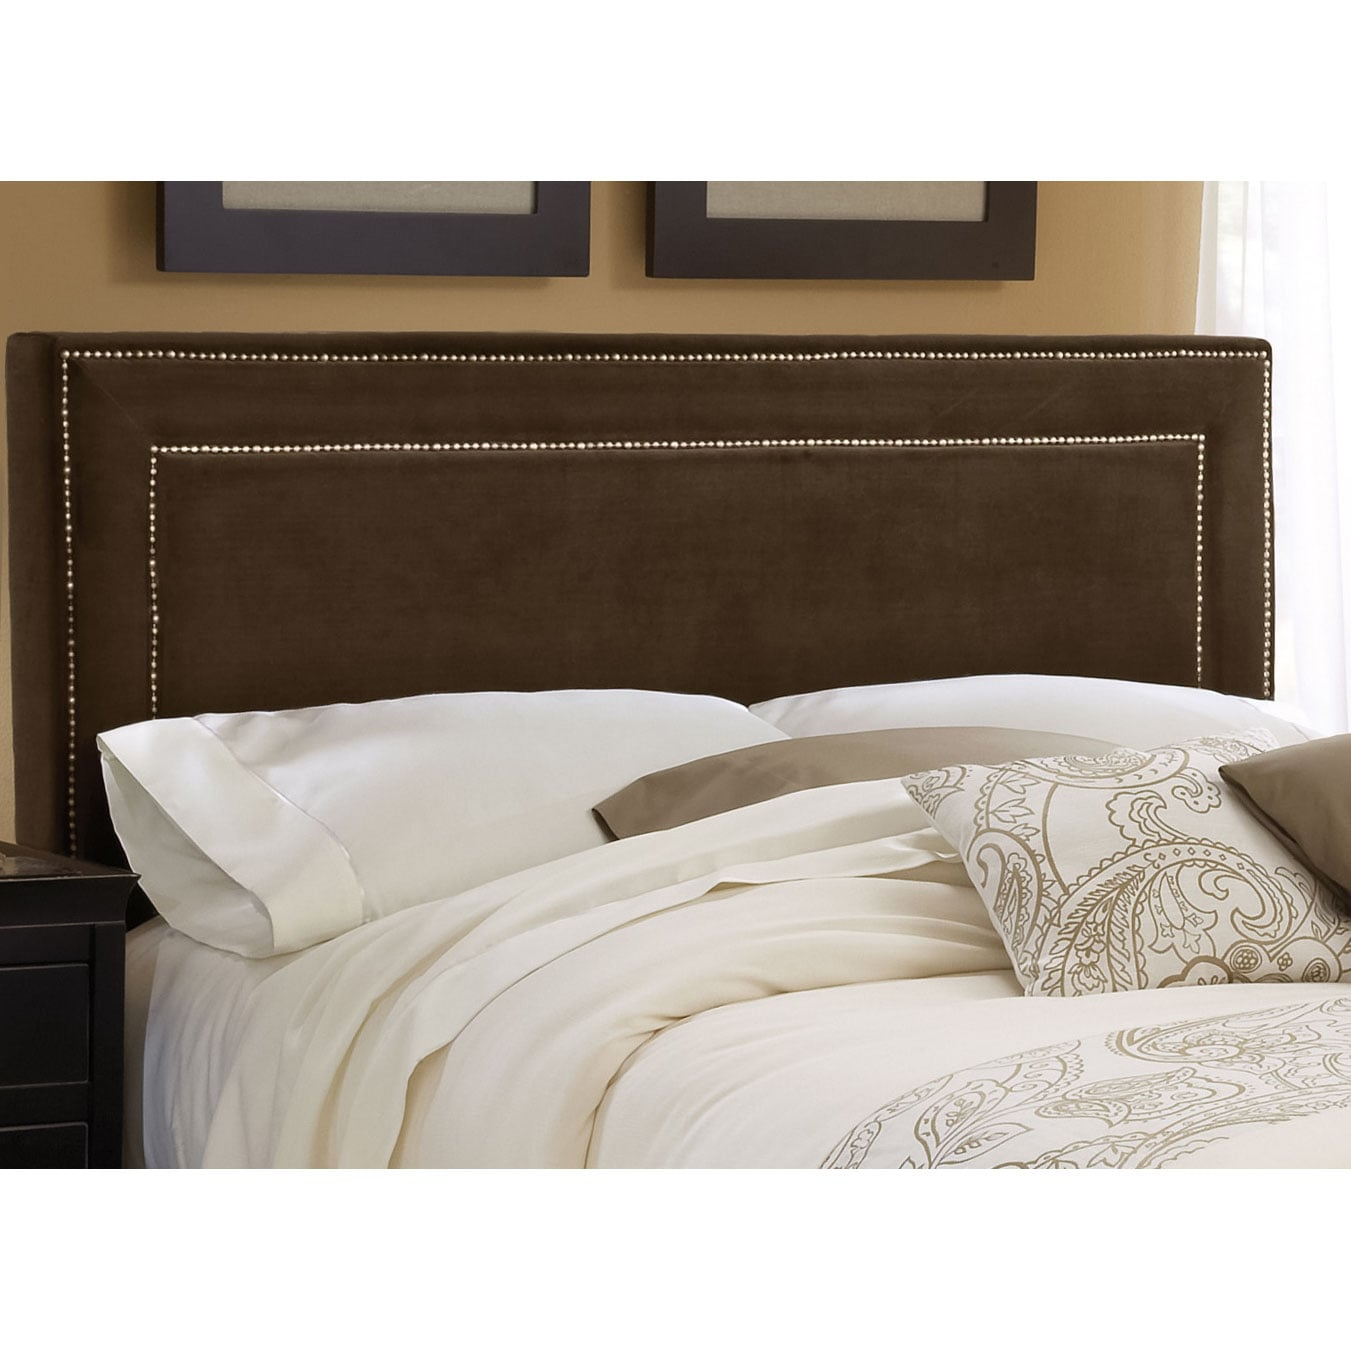 Headboards Bedroom Furniture American Signature Furniture